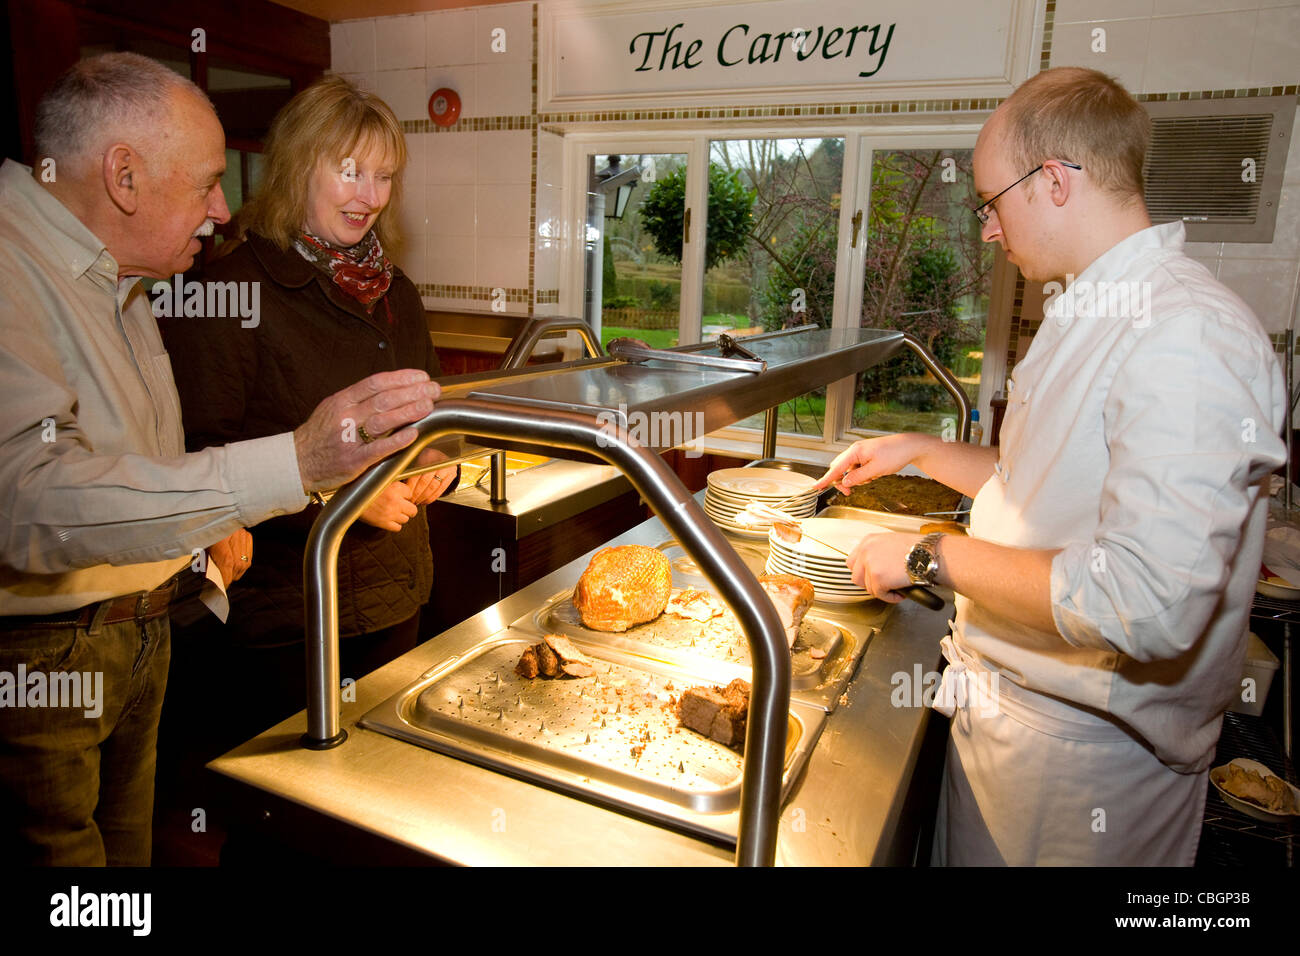 Customers, The Carvery, The Griffin Inn, Godshill, Isle of Wight, England, UK, - Stock Image